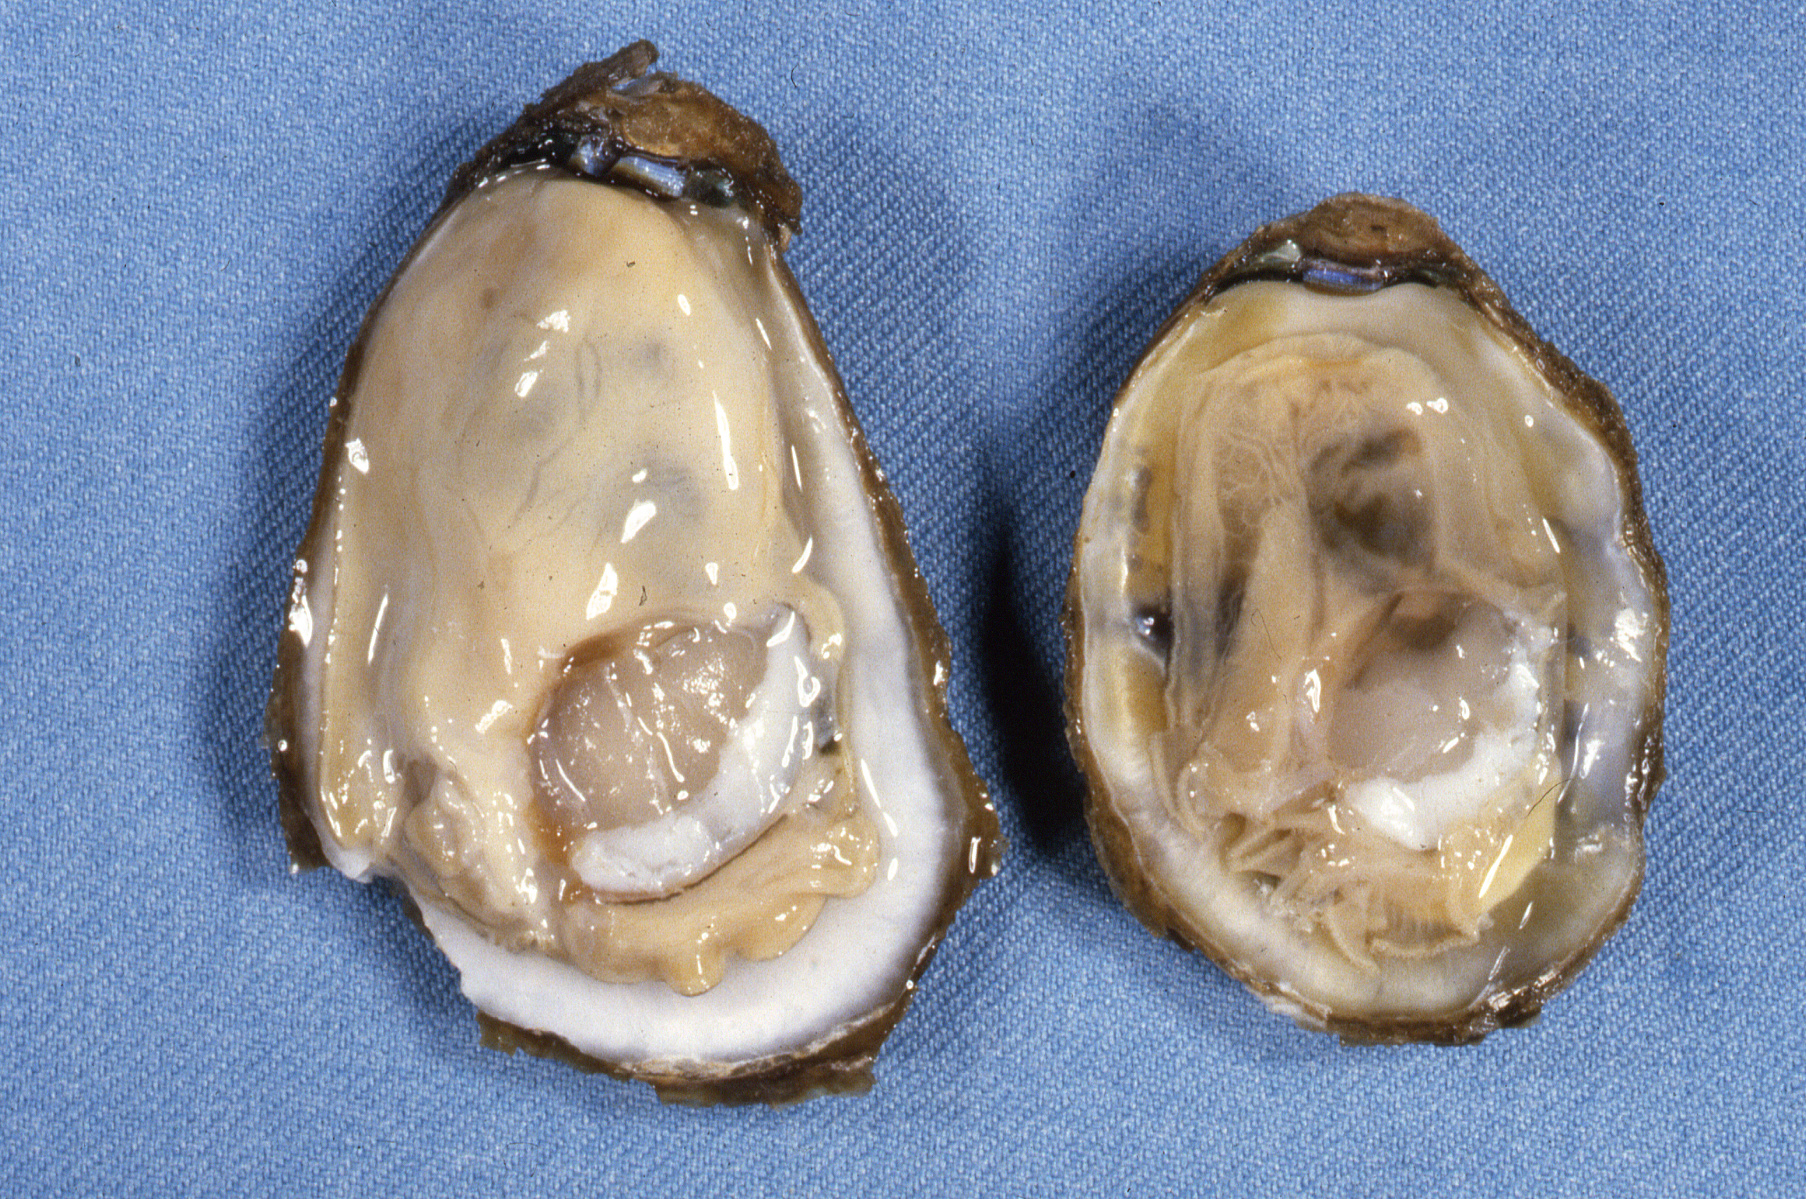 Heavy infection of Dermo in the lining of an oyster stomach. Credit: Susan Ford